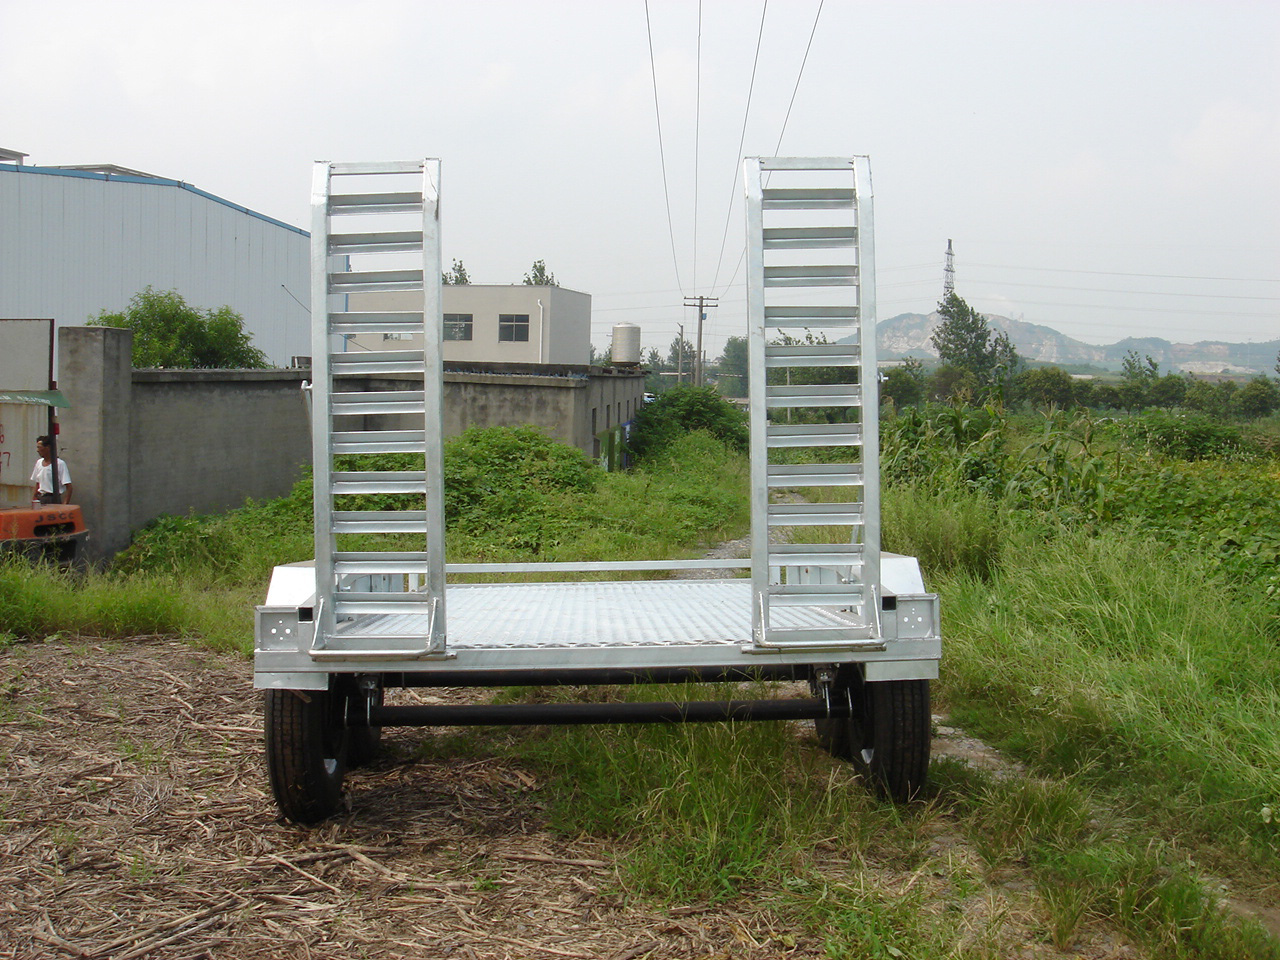 Best tire styled mobile plant trailer with the best price